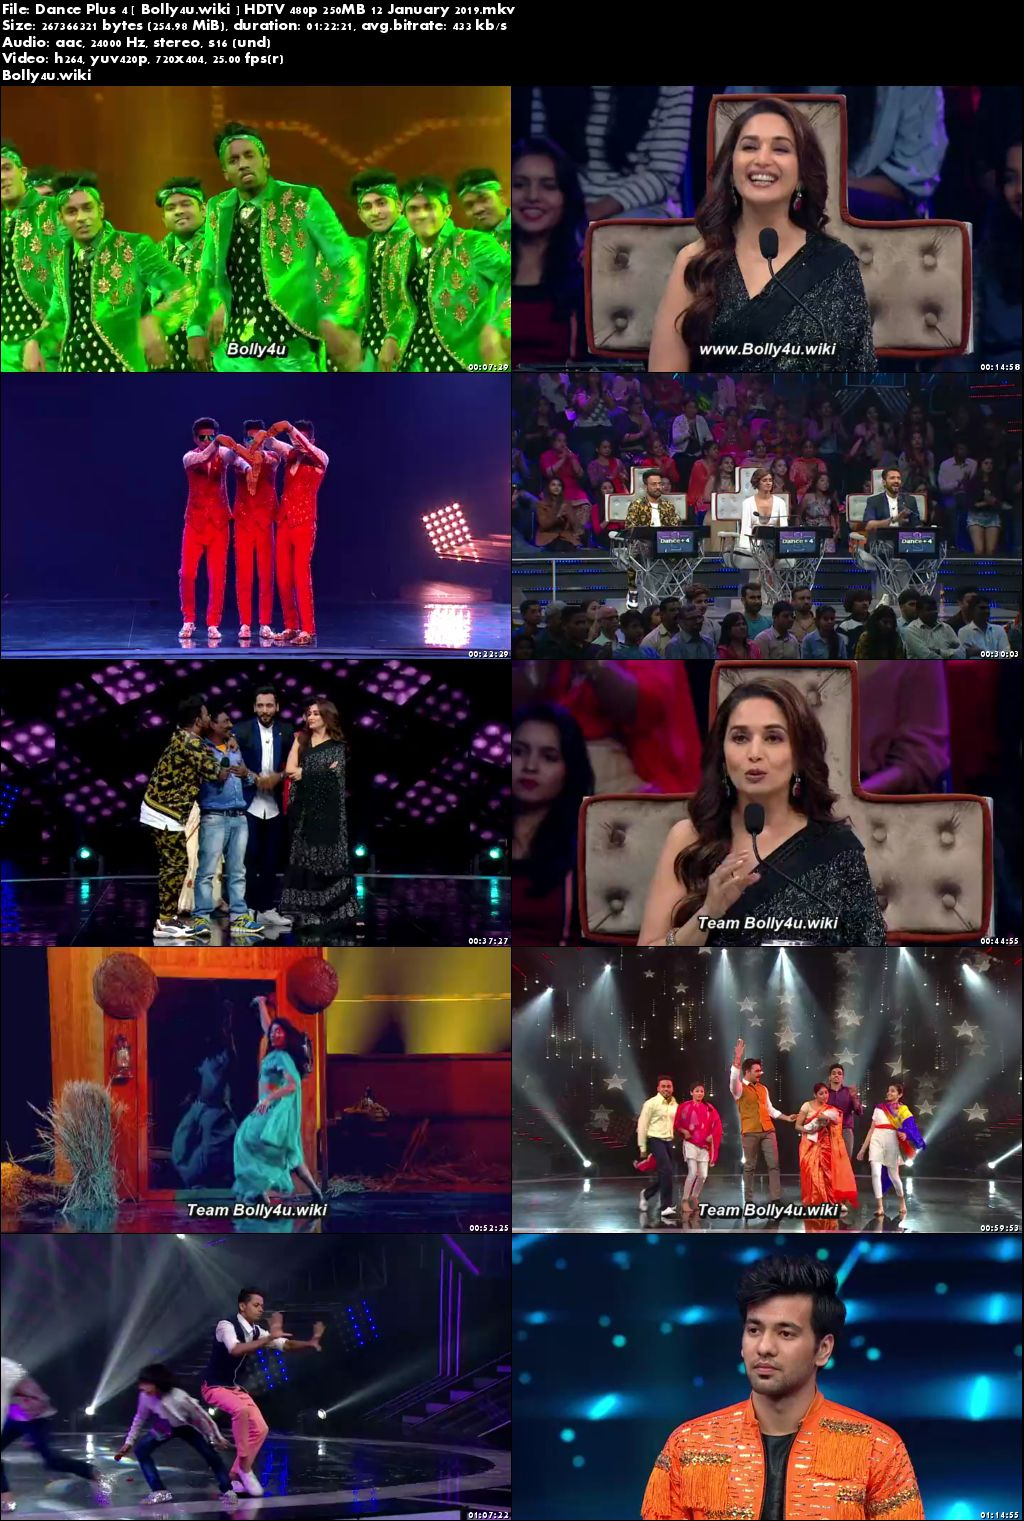 Dance Plus Season 4 HDTV 480p 250MB 12 January 2019 Download